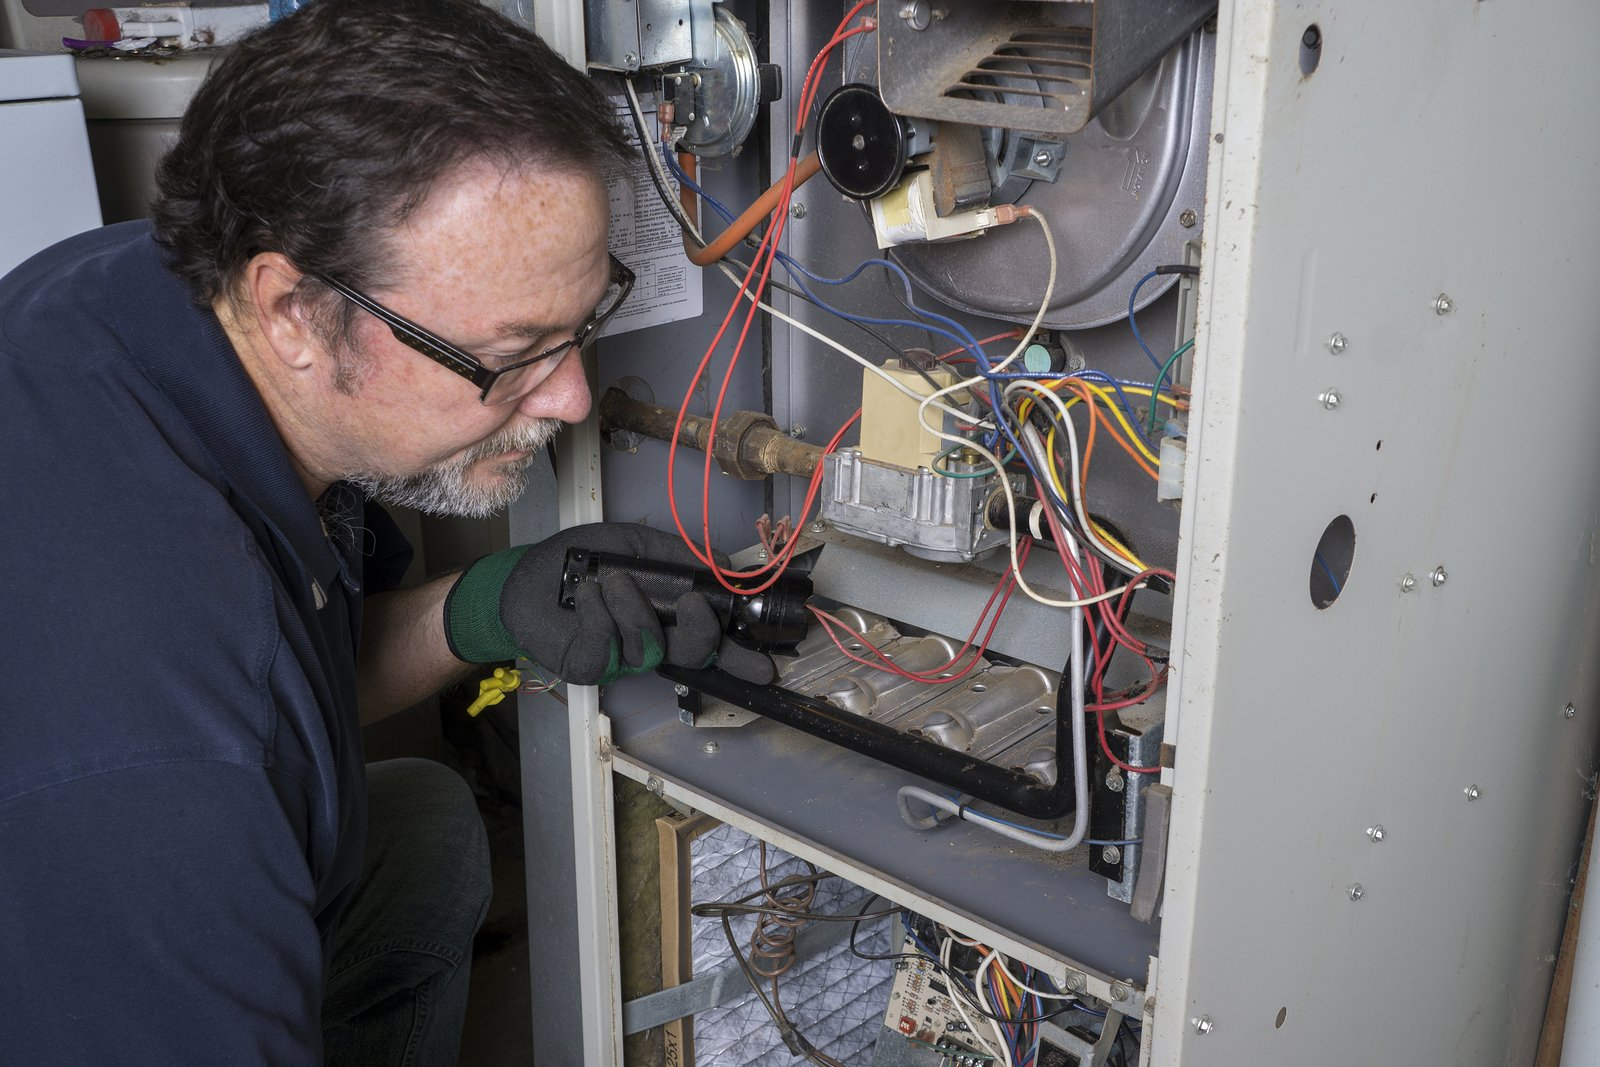 Bettendorf Furnace Repair